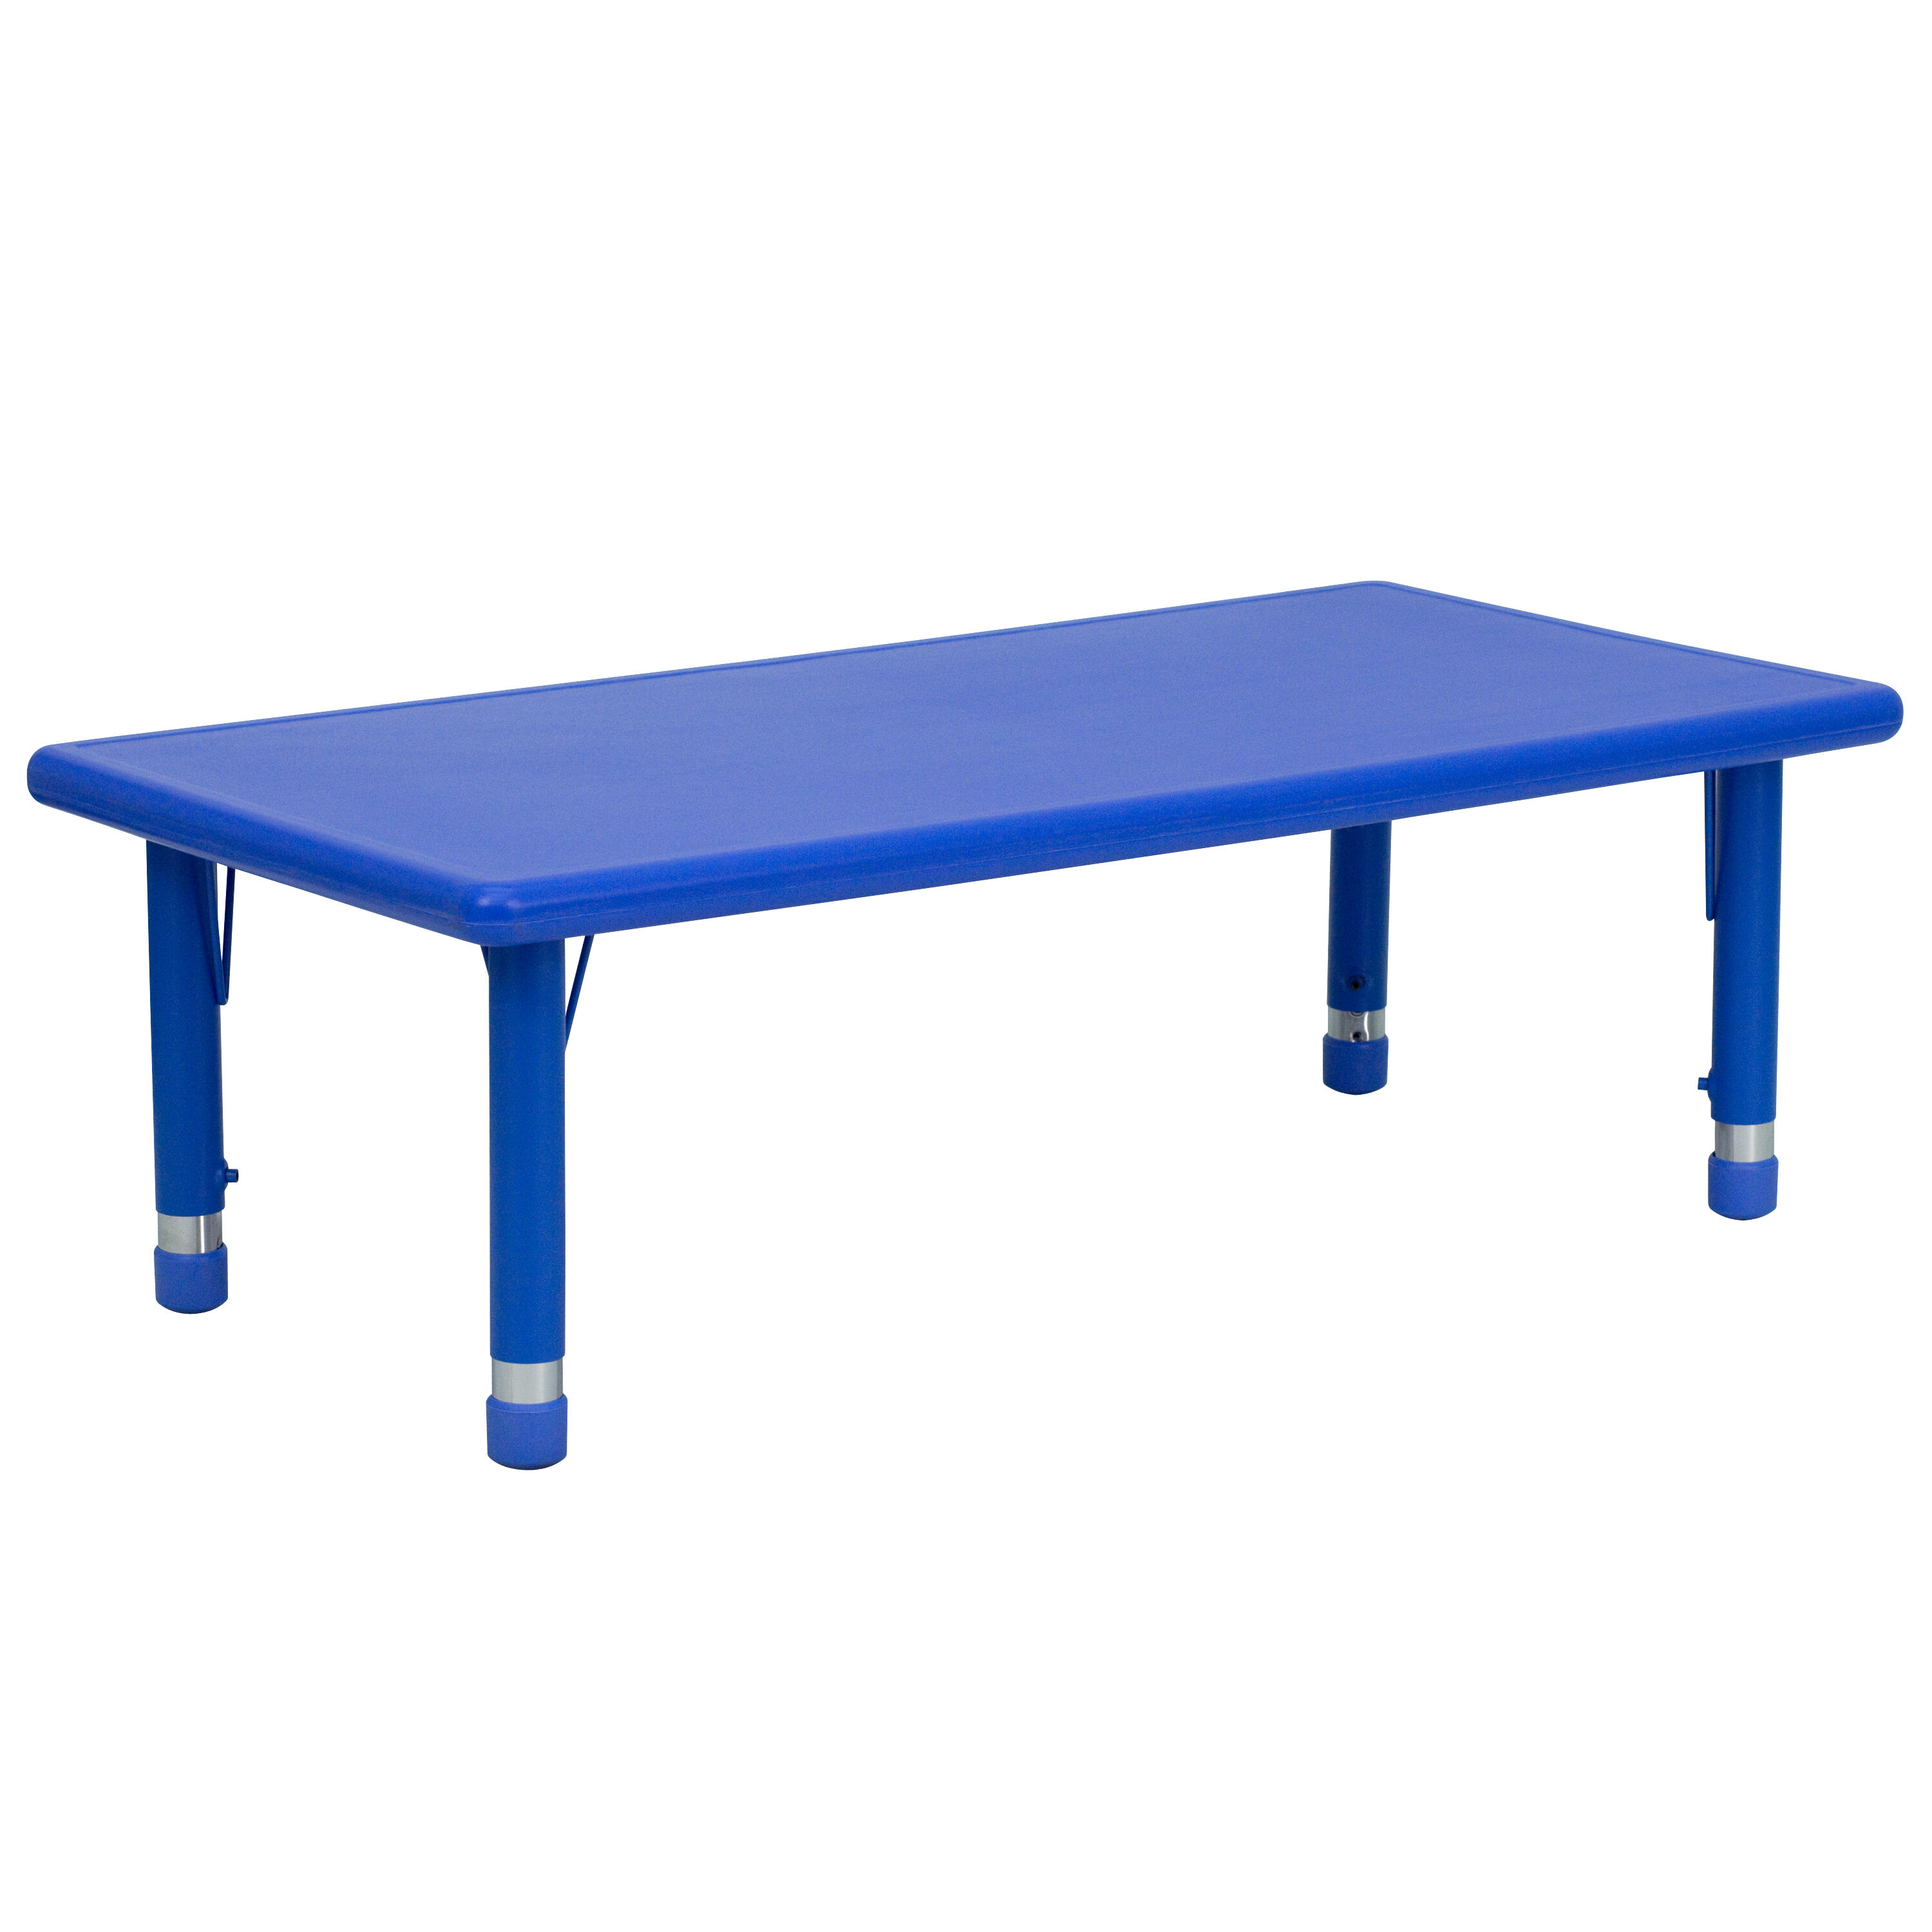 24u0027u0027W X 48u0027u0027L Rectangular Blue Plastic Height Adjustable Activity Table